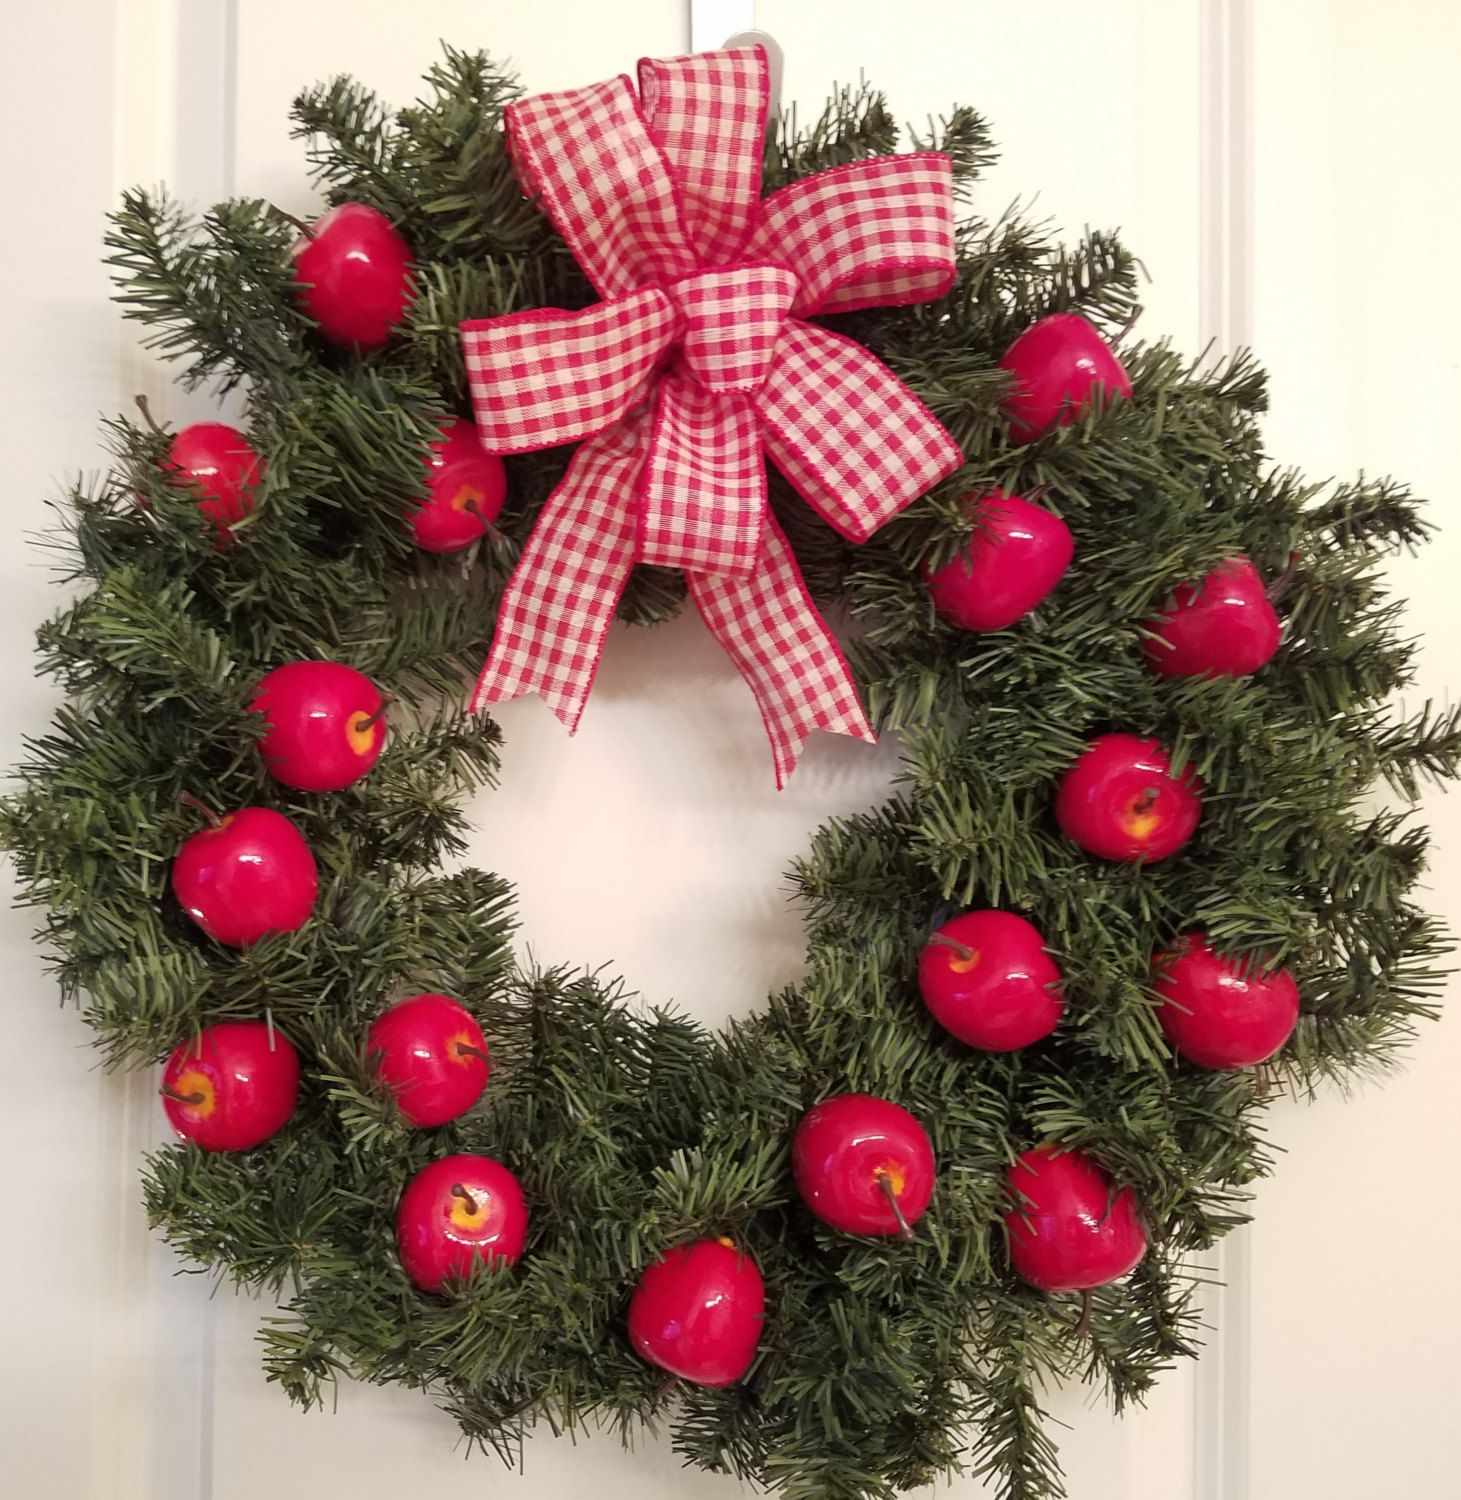 Fall Wreath, Christmas Wreath, Apples, Red, Red And White Plaid